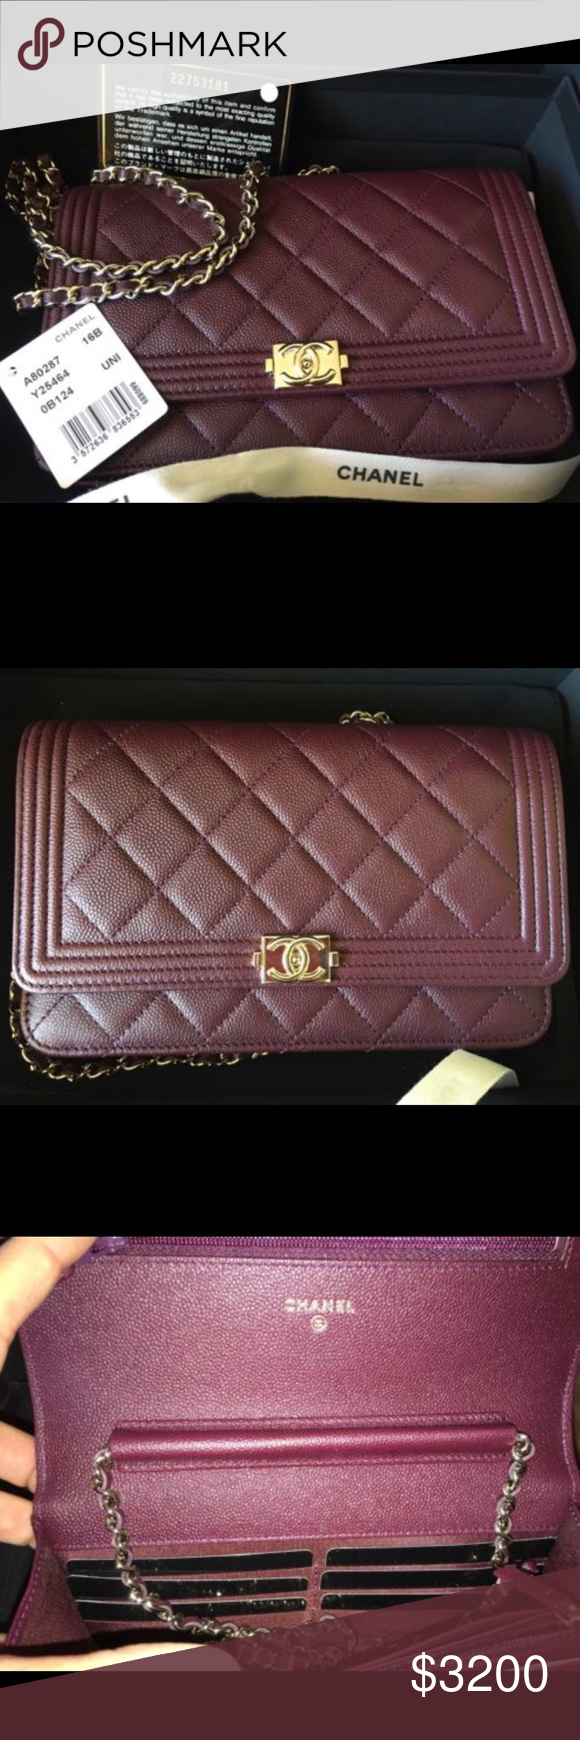 e292313de74d Chanel Boy Burgundy Woc Brand new authentic with tags. No receipt available  comes with authentication